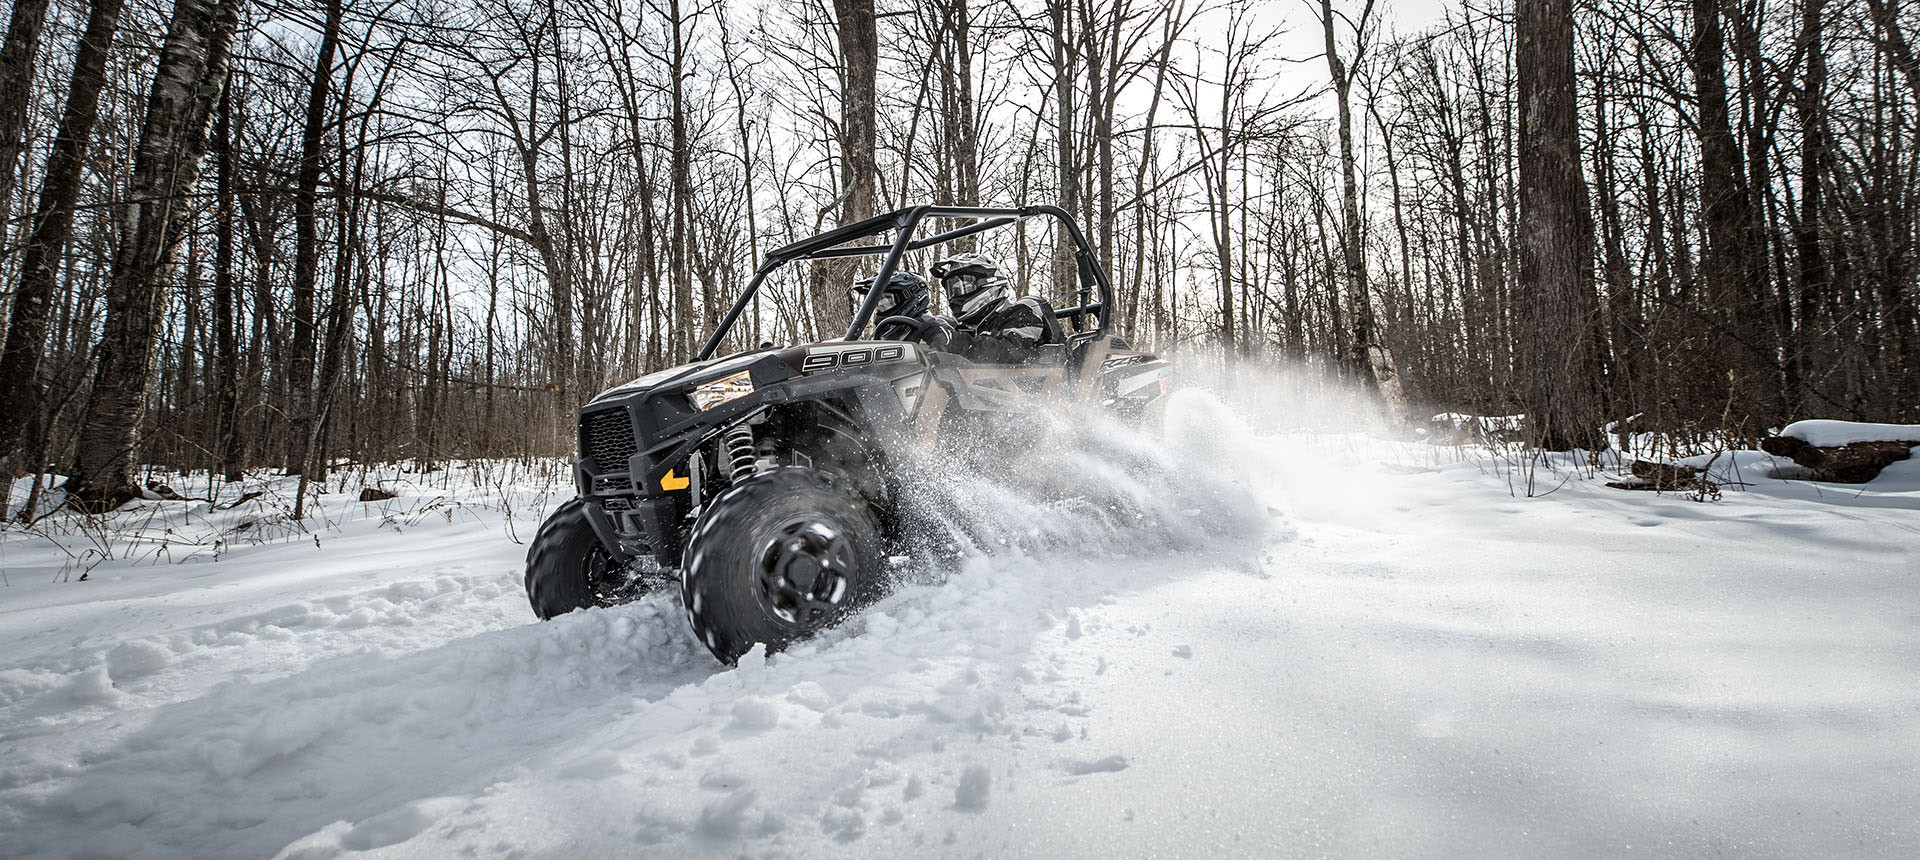 2020 RZR<sup>®</sup> Trail 900 Instagram image 5